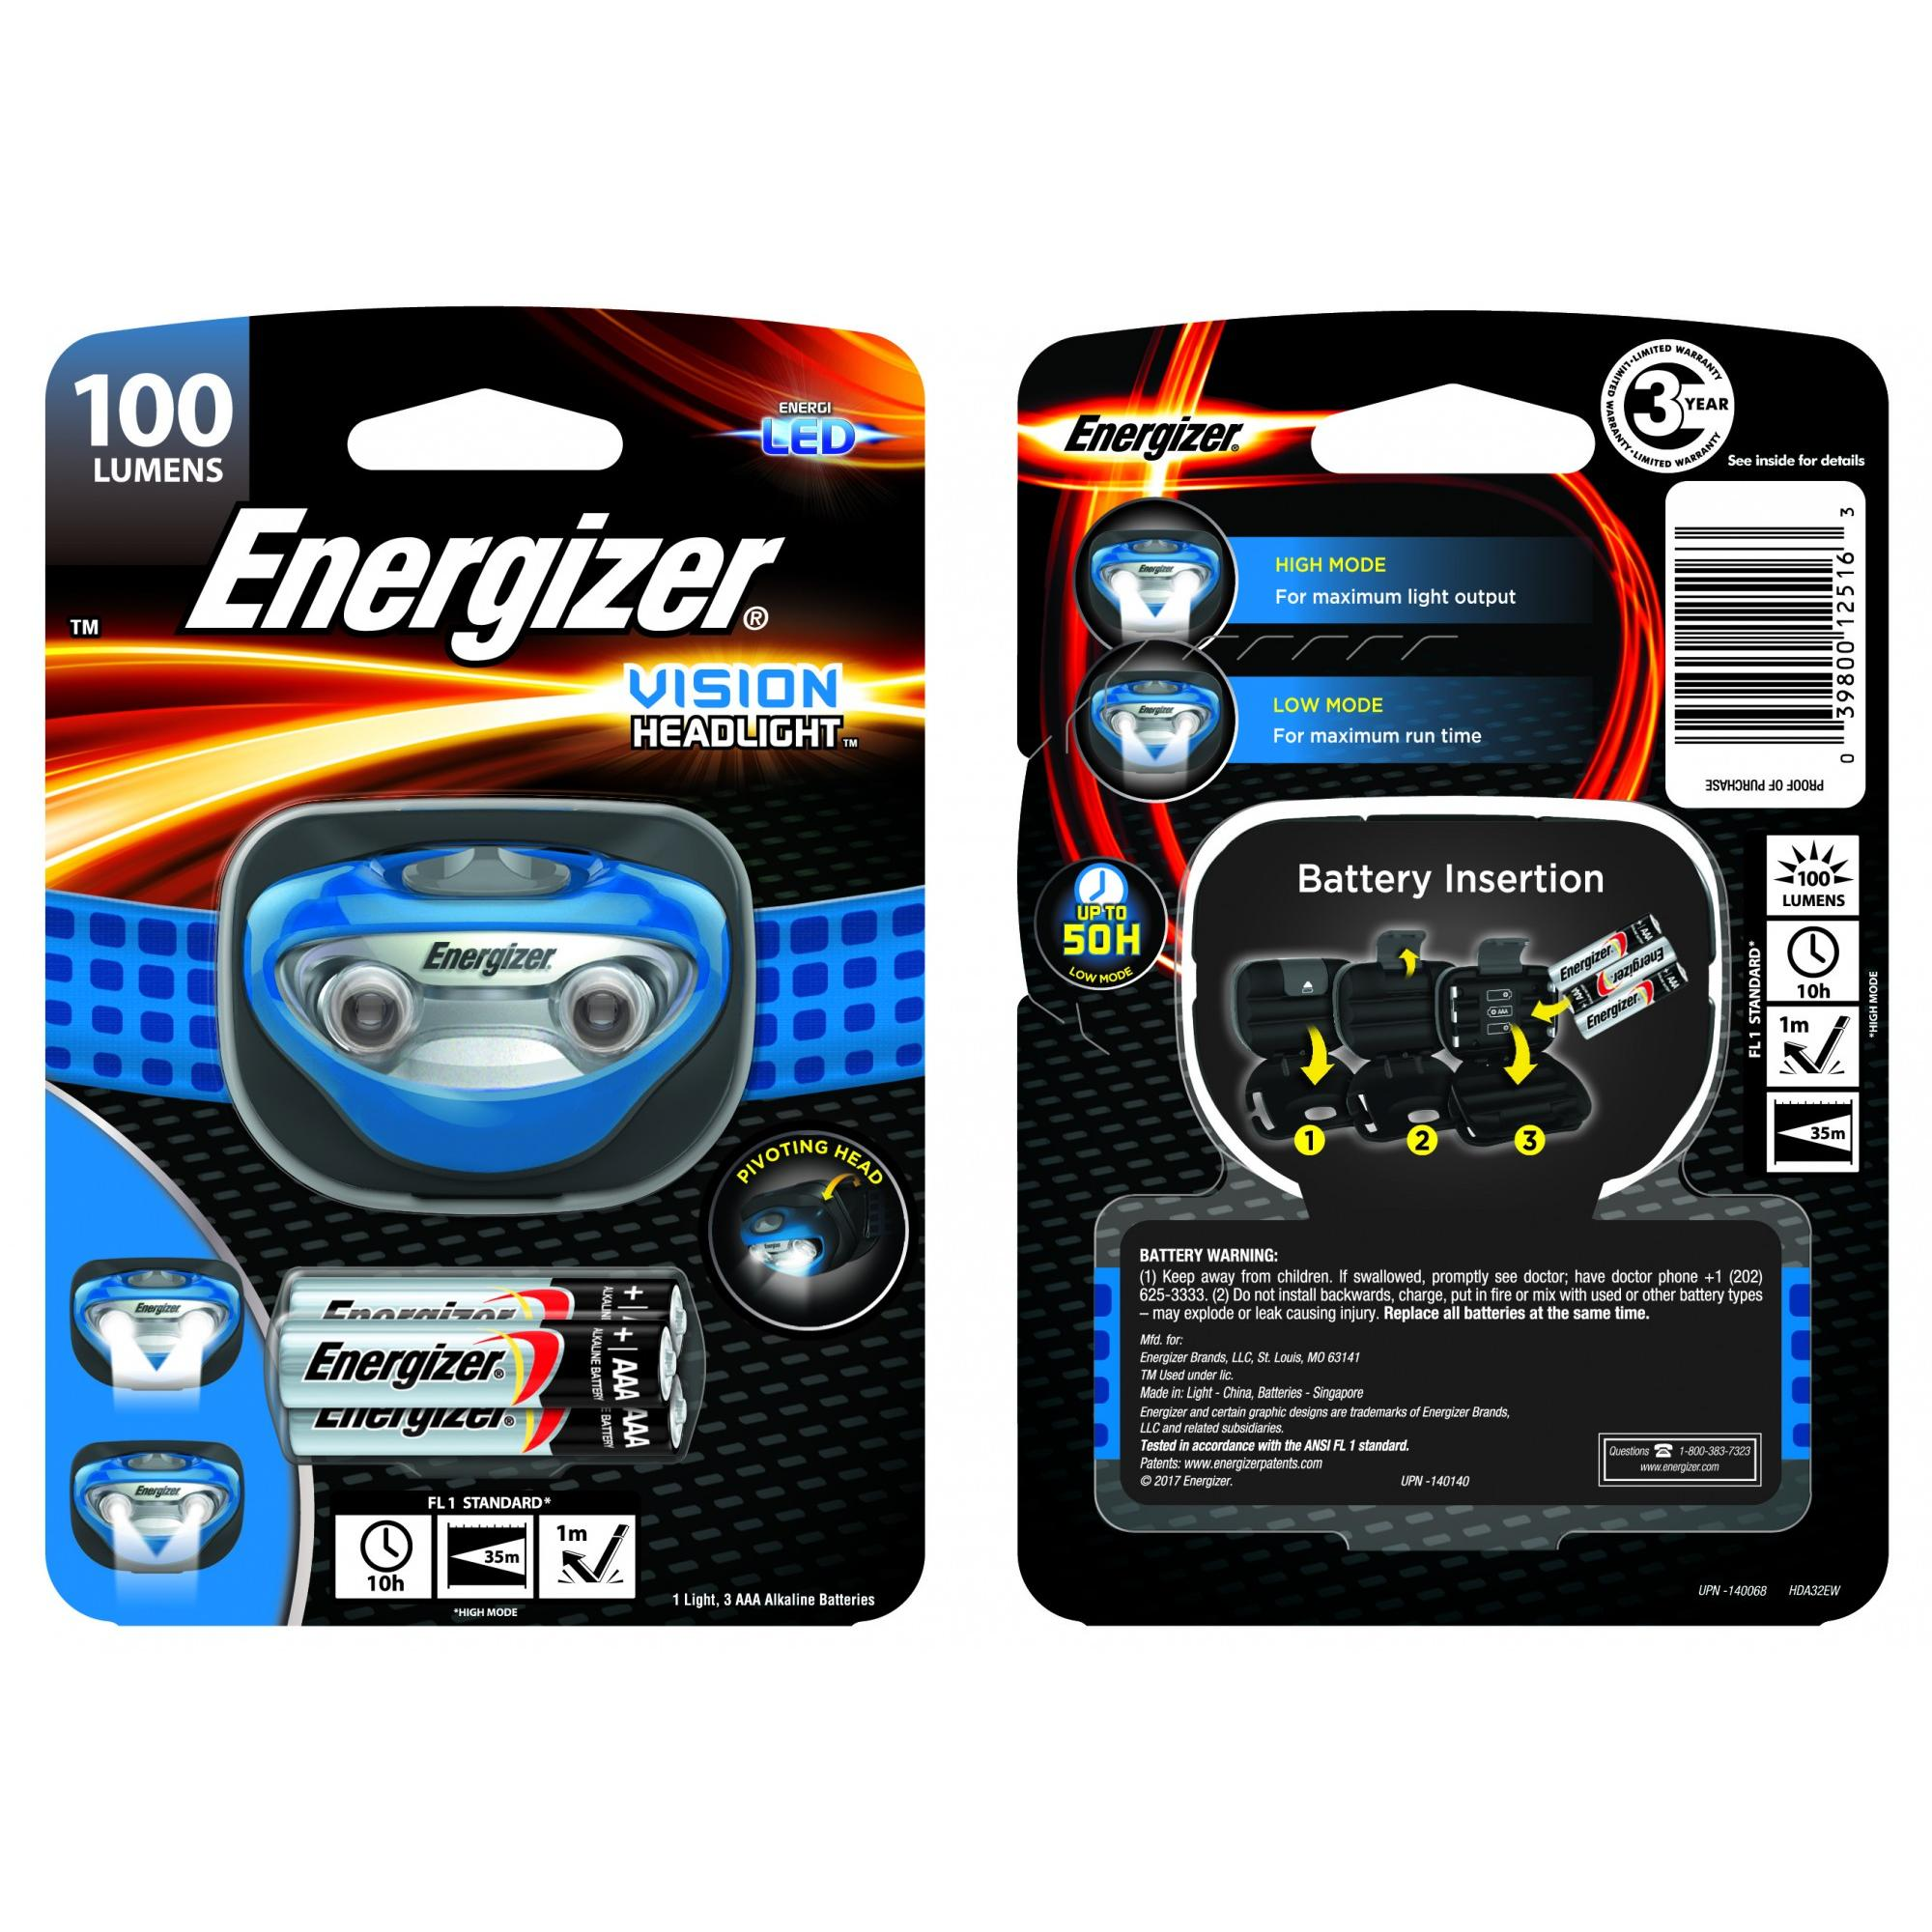 Energizer Vision Headlight (Batteries Included)